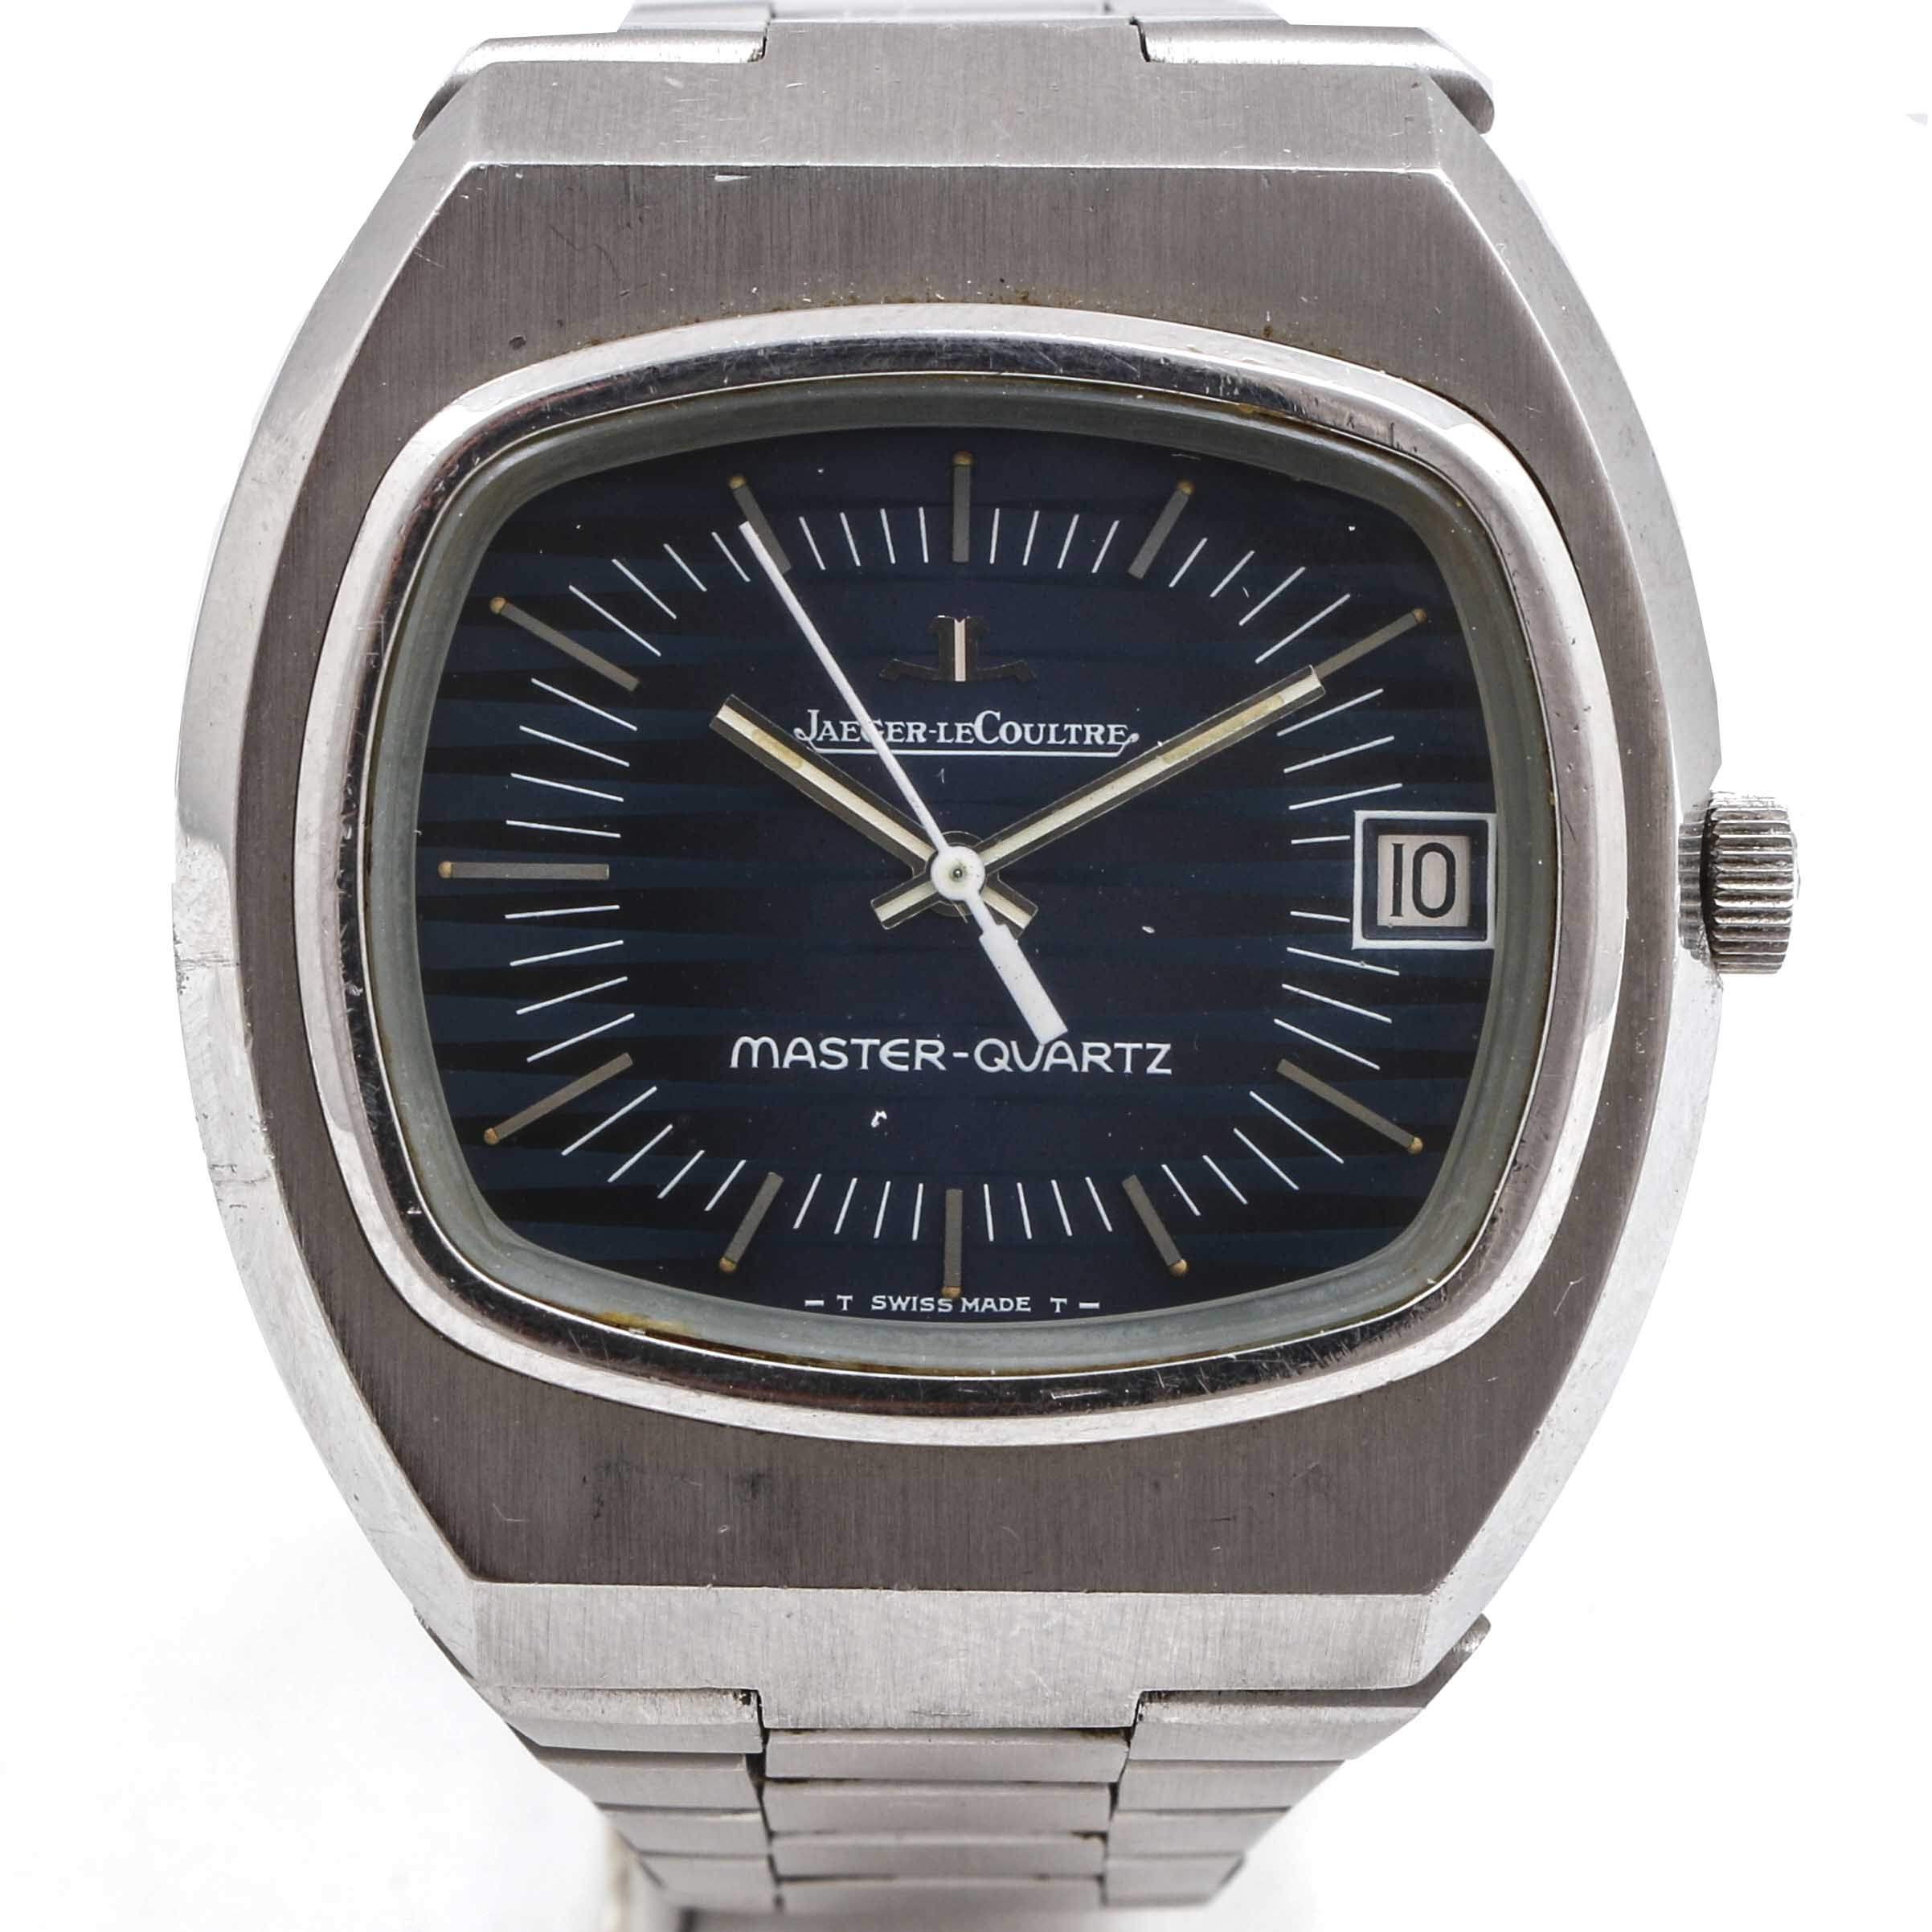 Jaeger-LeCoultre Stainless Steel Wristwatch